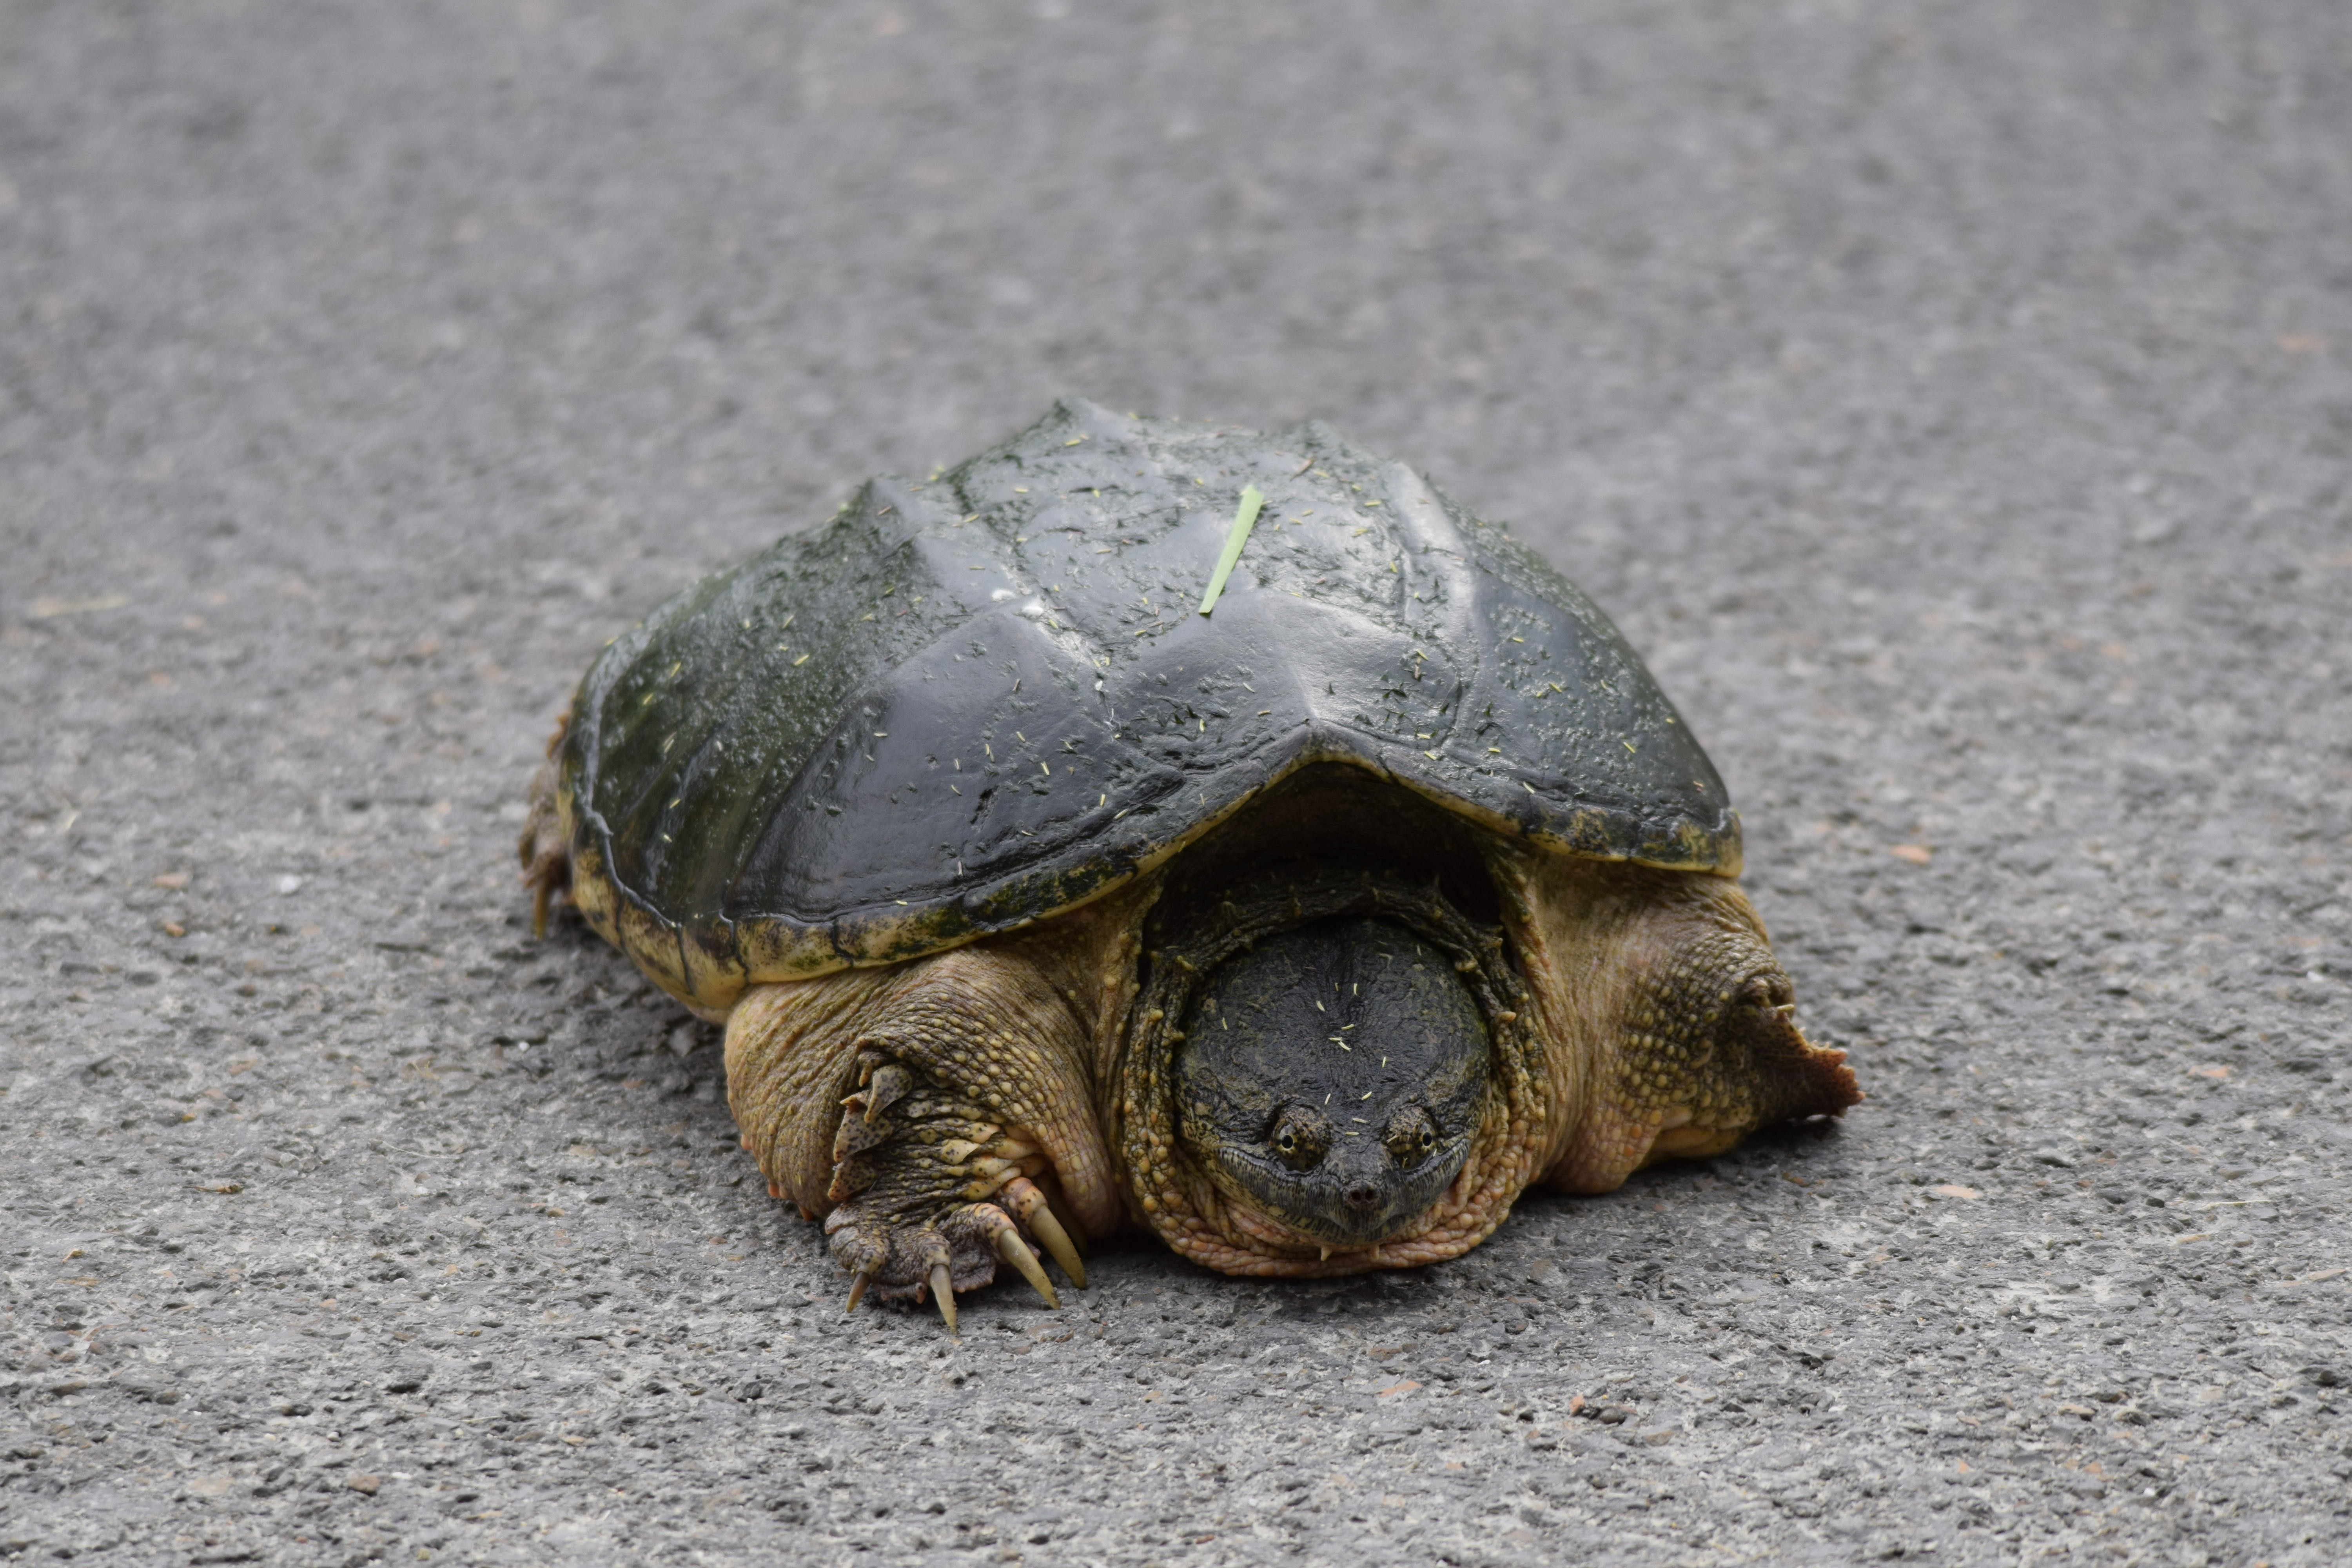 Kansas atchison county lancaster - Eastern Snapping Turtle